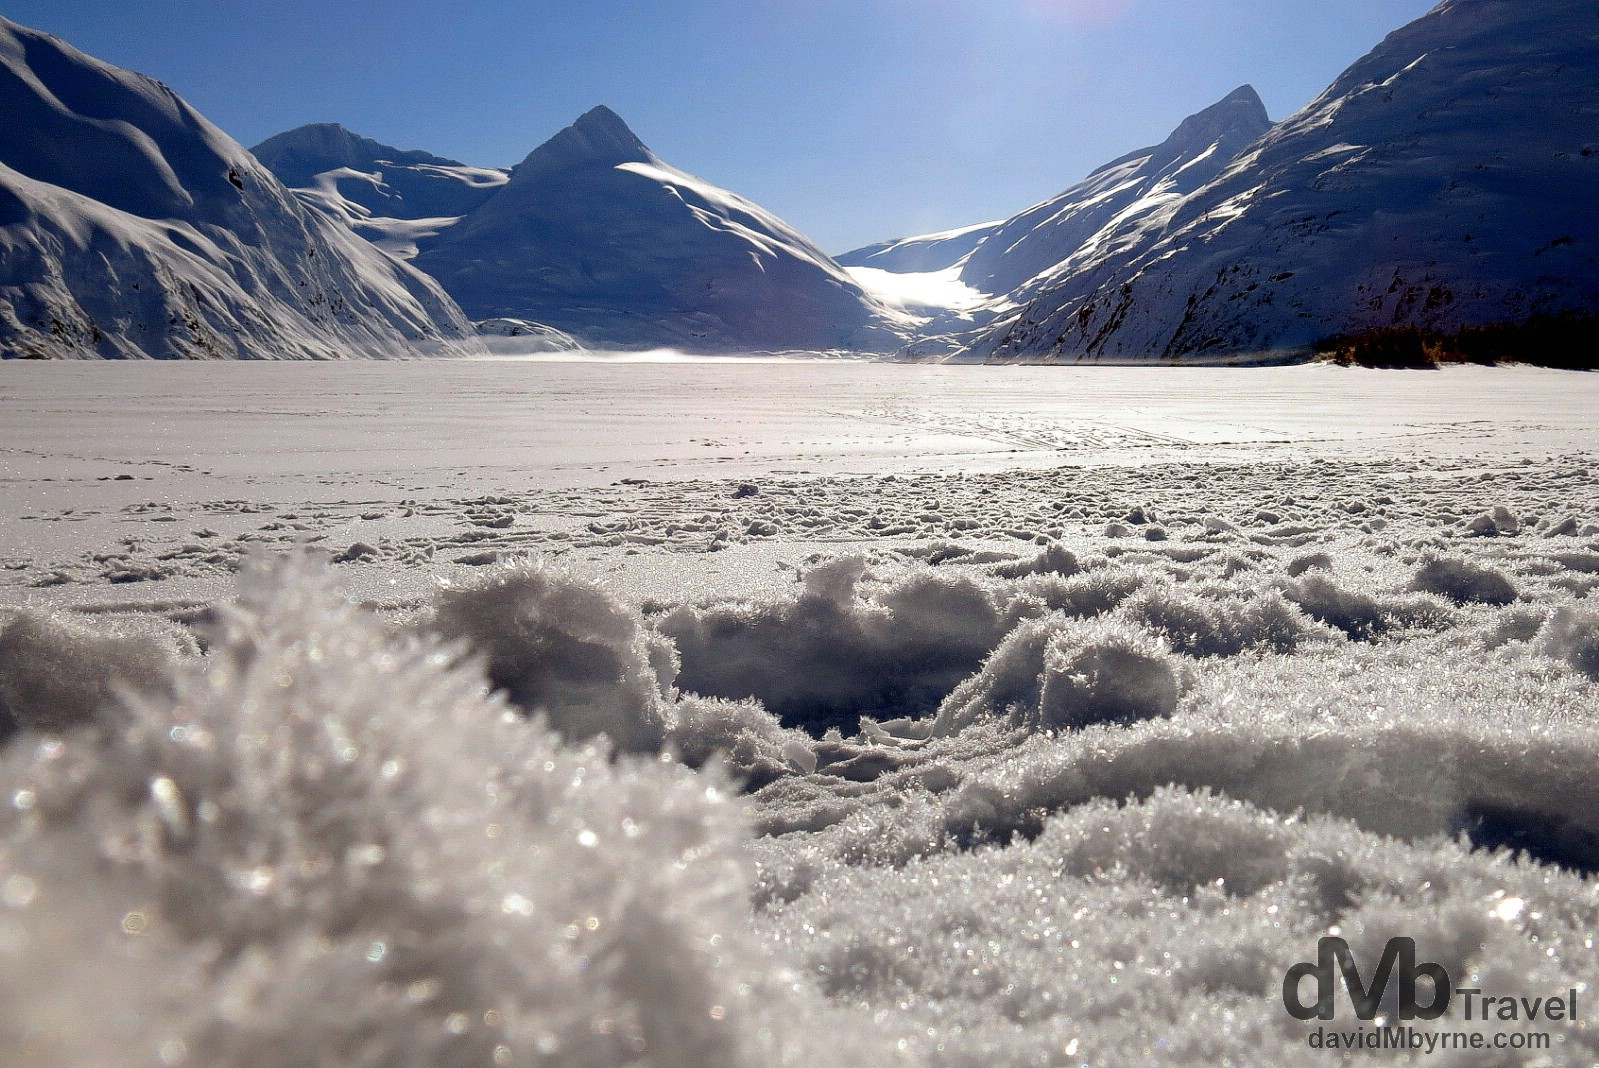 Portage Lake frozen with the Portage Glacier resting in the valley in the distance, Chugach National Forest, Kenai Peninsula, Alaska, USA. March 12th 2013.